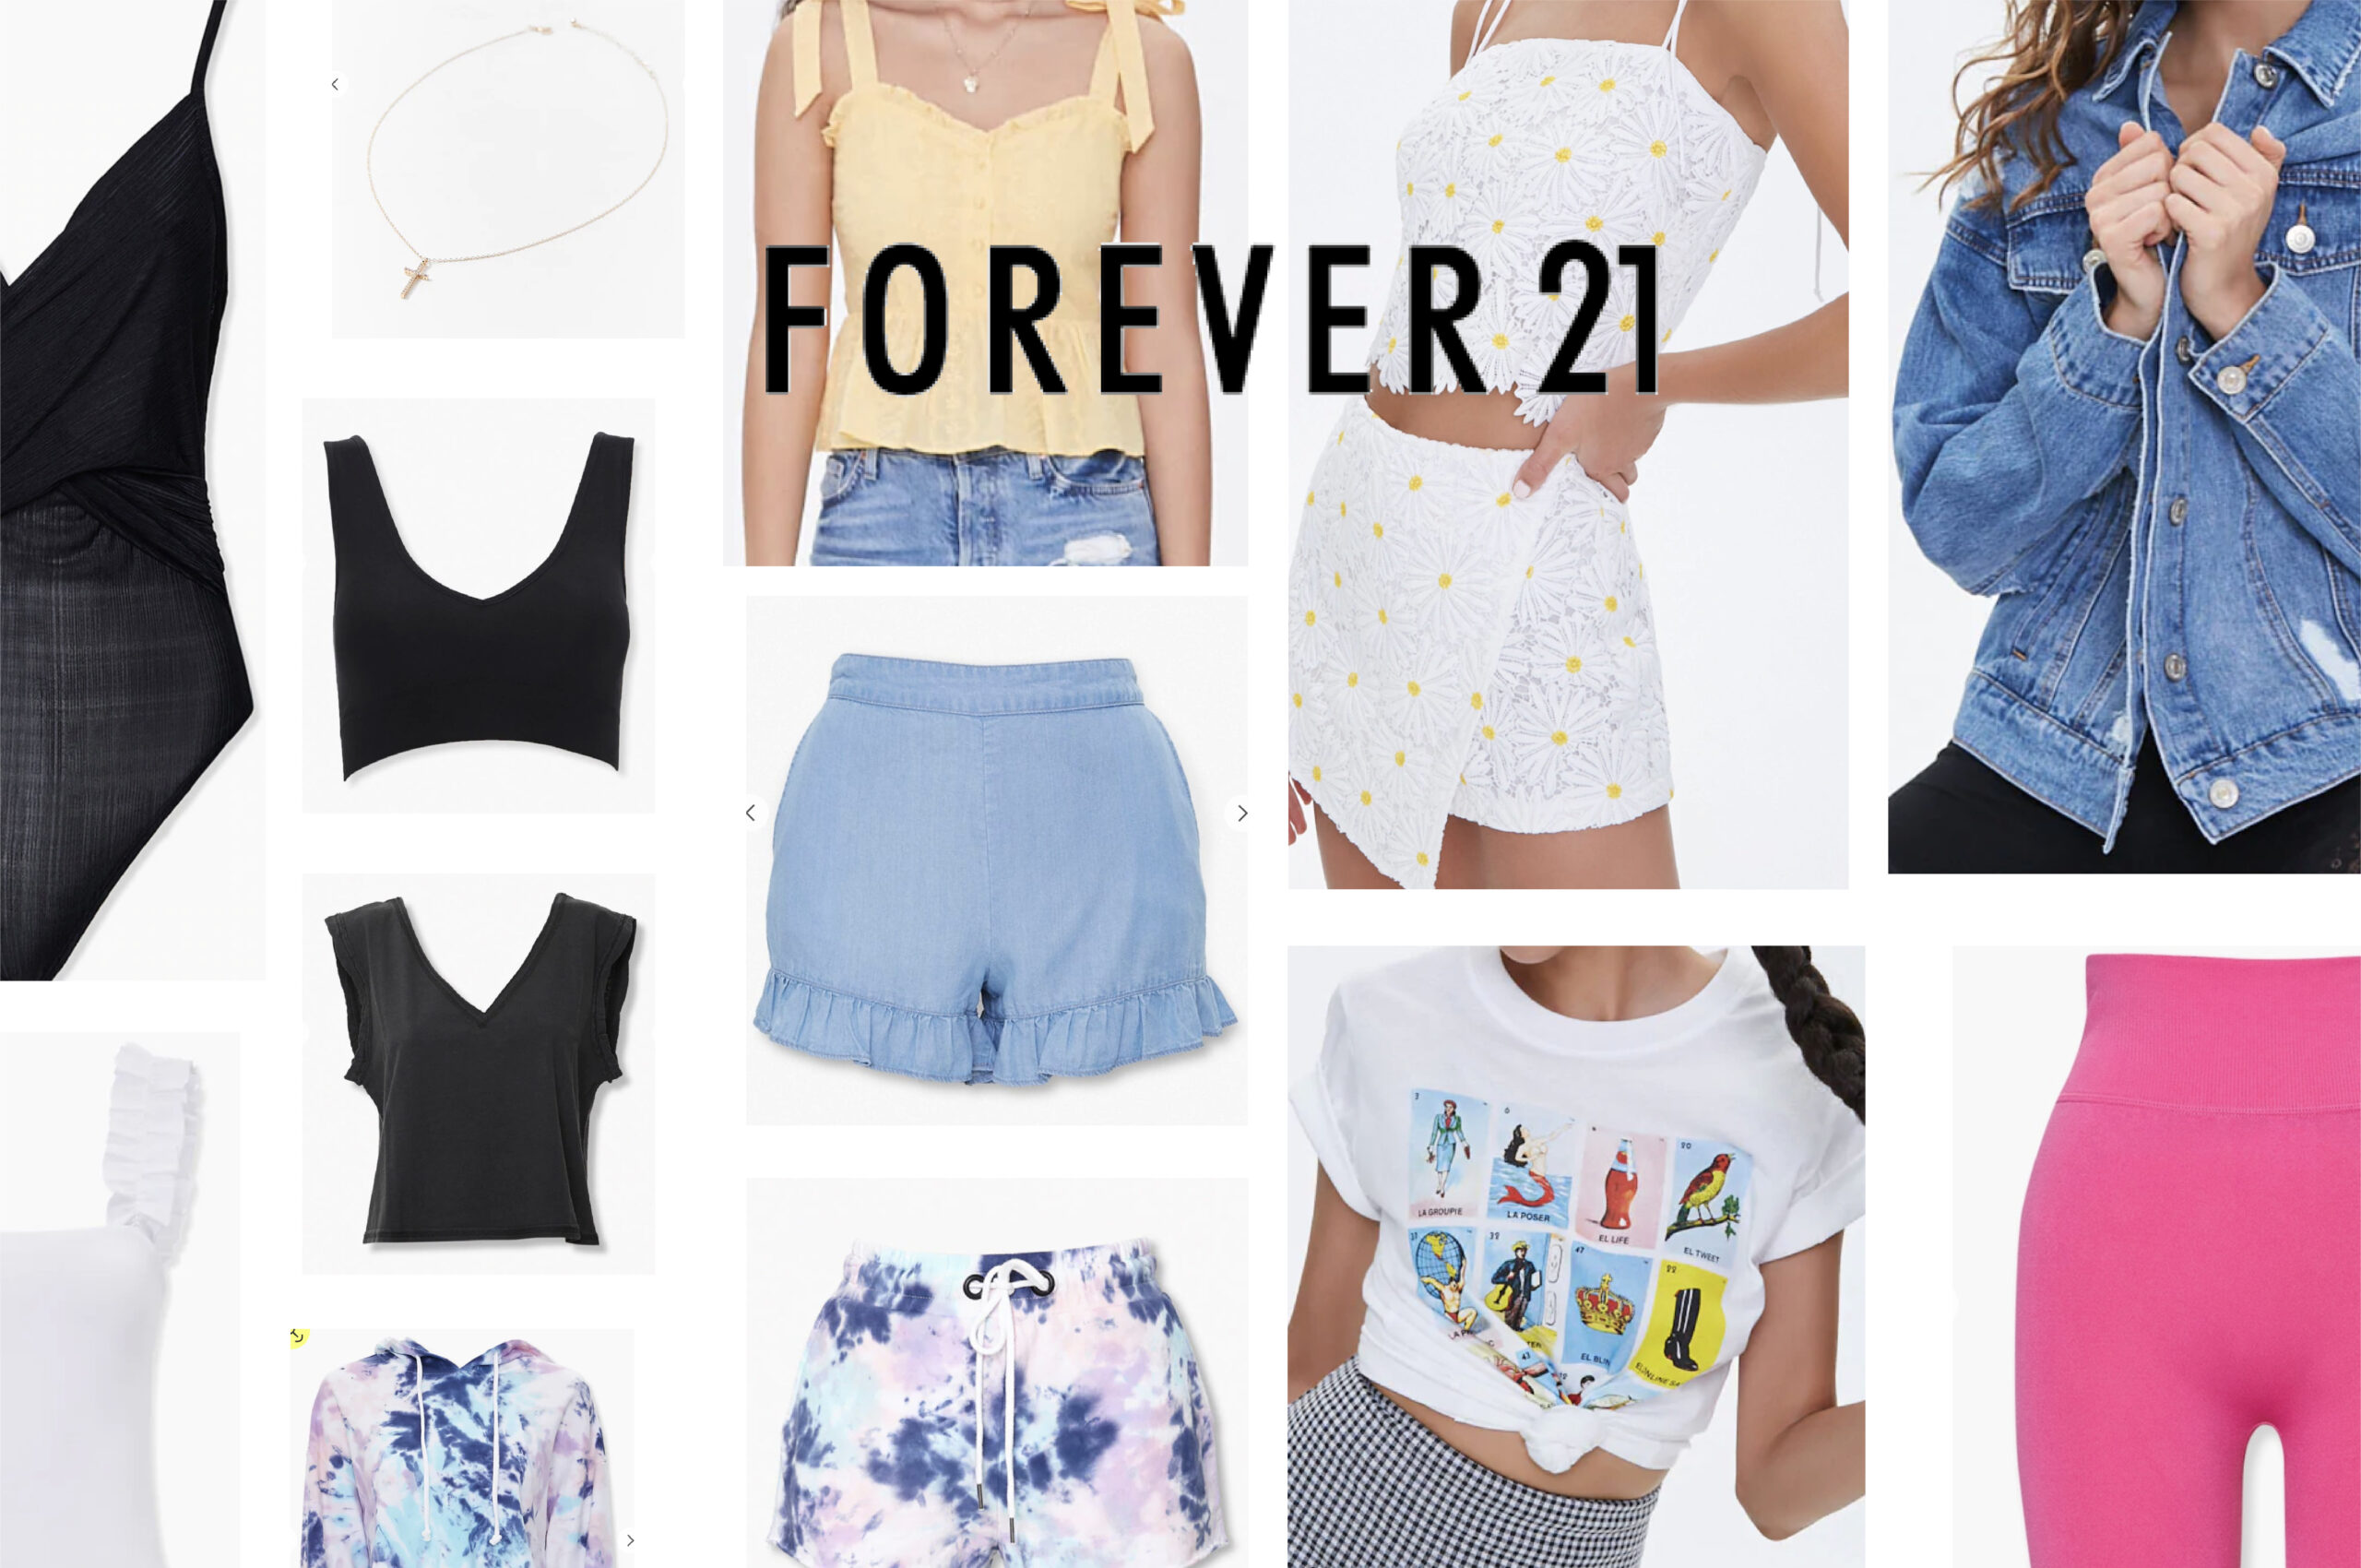 Forever 21 Sale